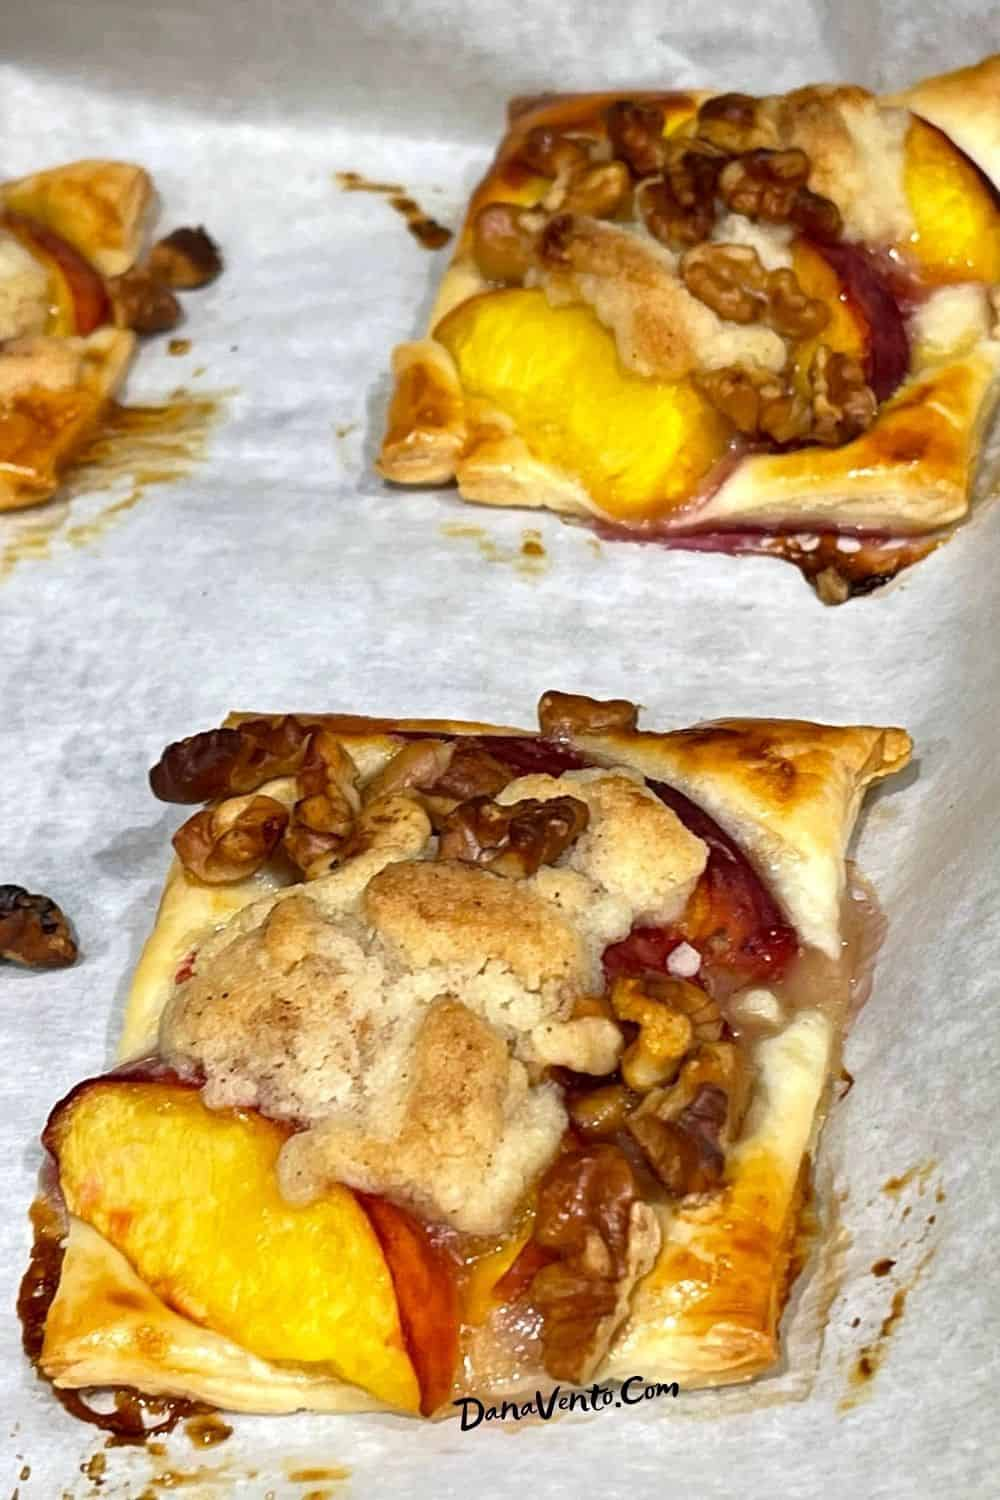 Dutch Crumb Peach Pastry Bites Baked